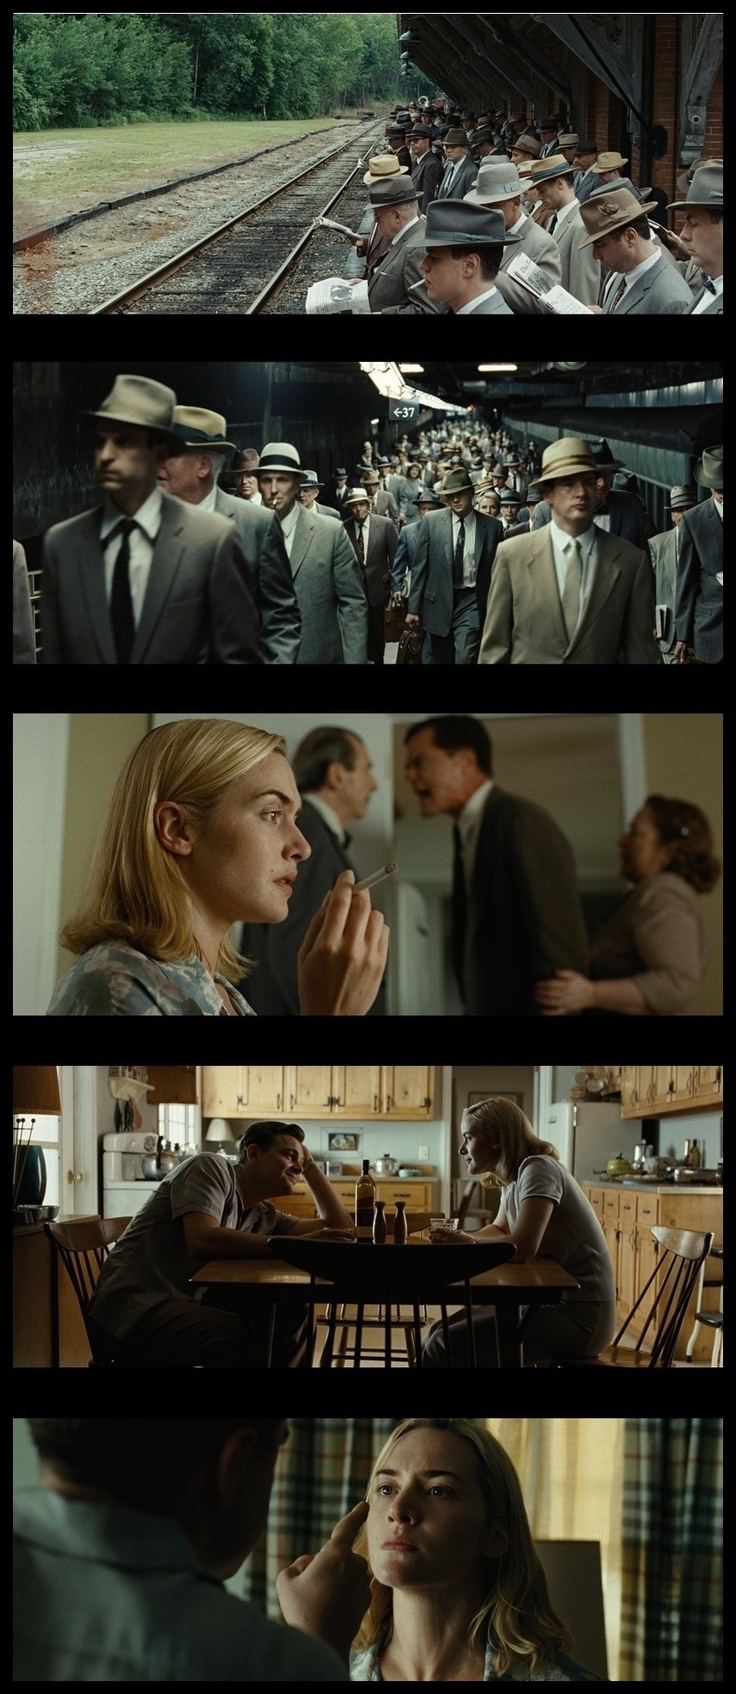 Revolutionary Road, Sam Mendes, 2008 - A disturbing film. An excellent film about a marriage, thankfully not mine.